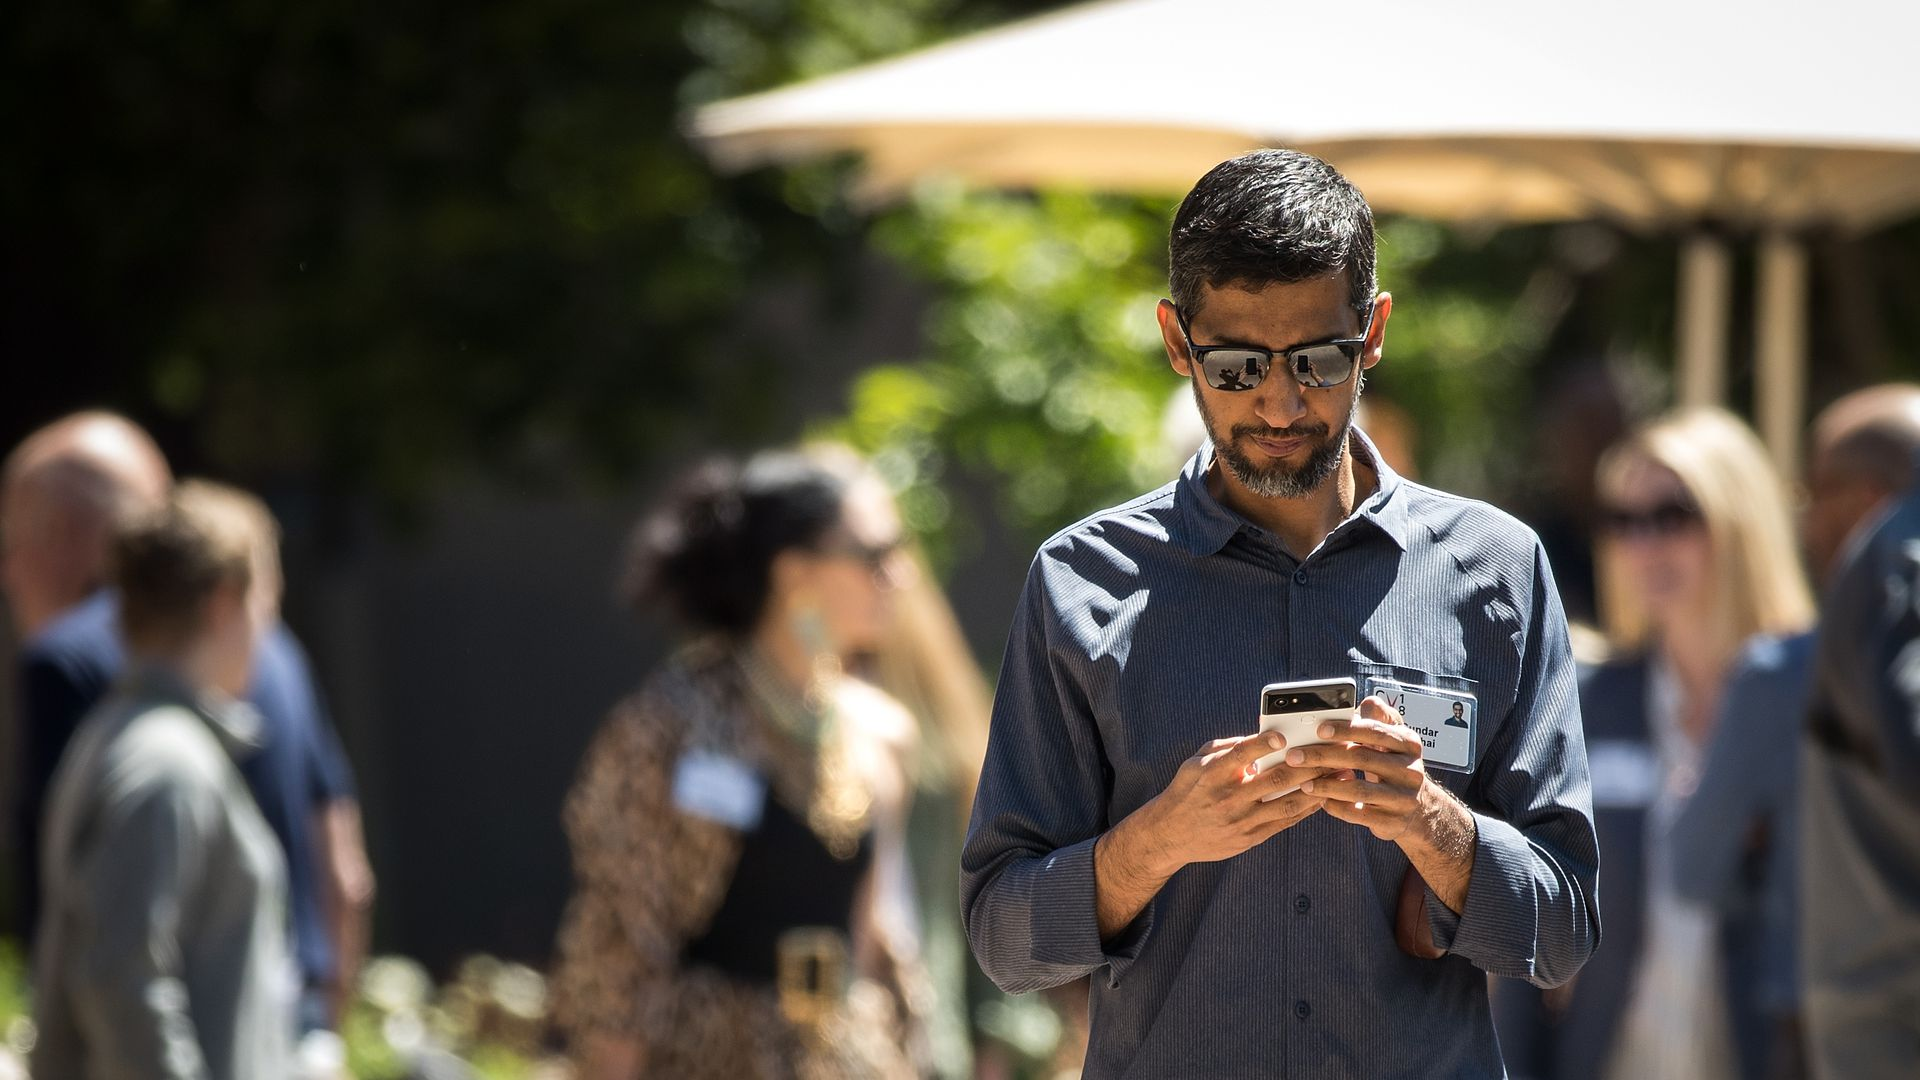 This is the CEO of Google on his phone